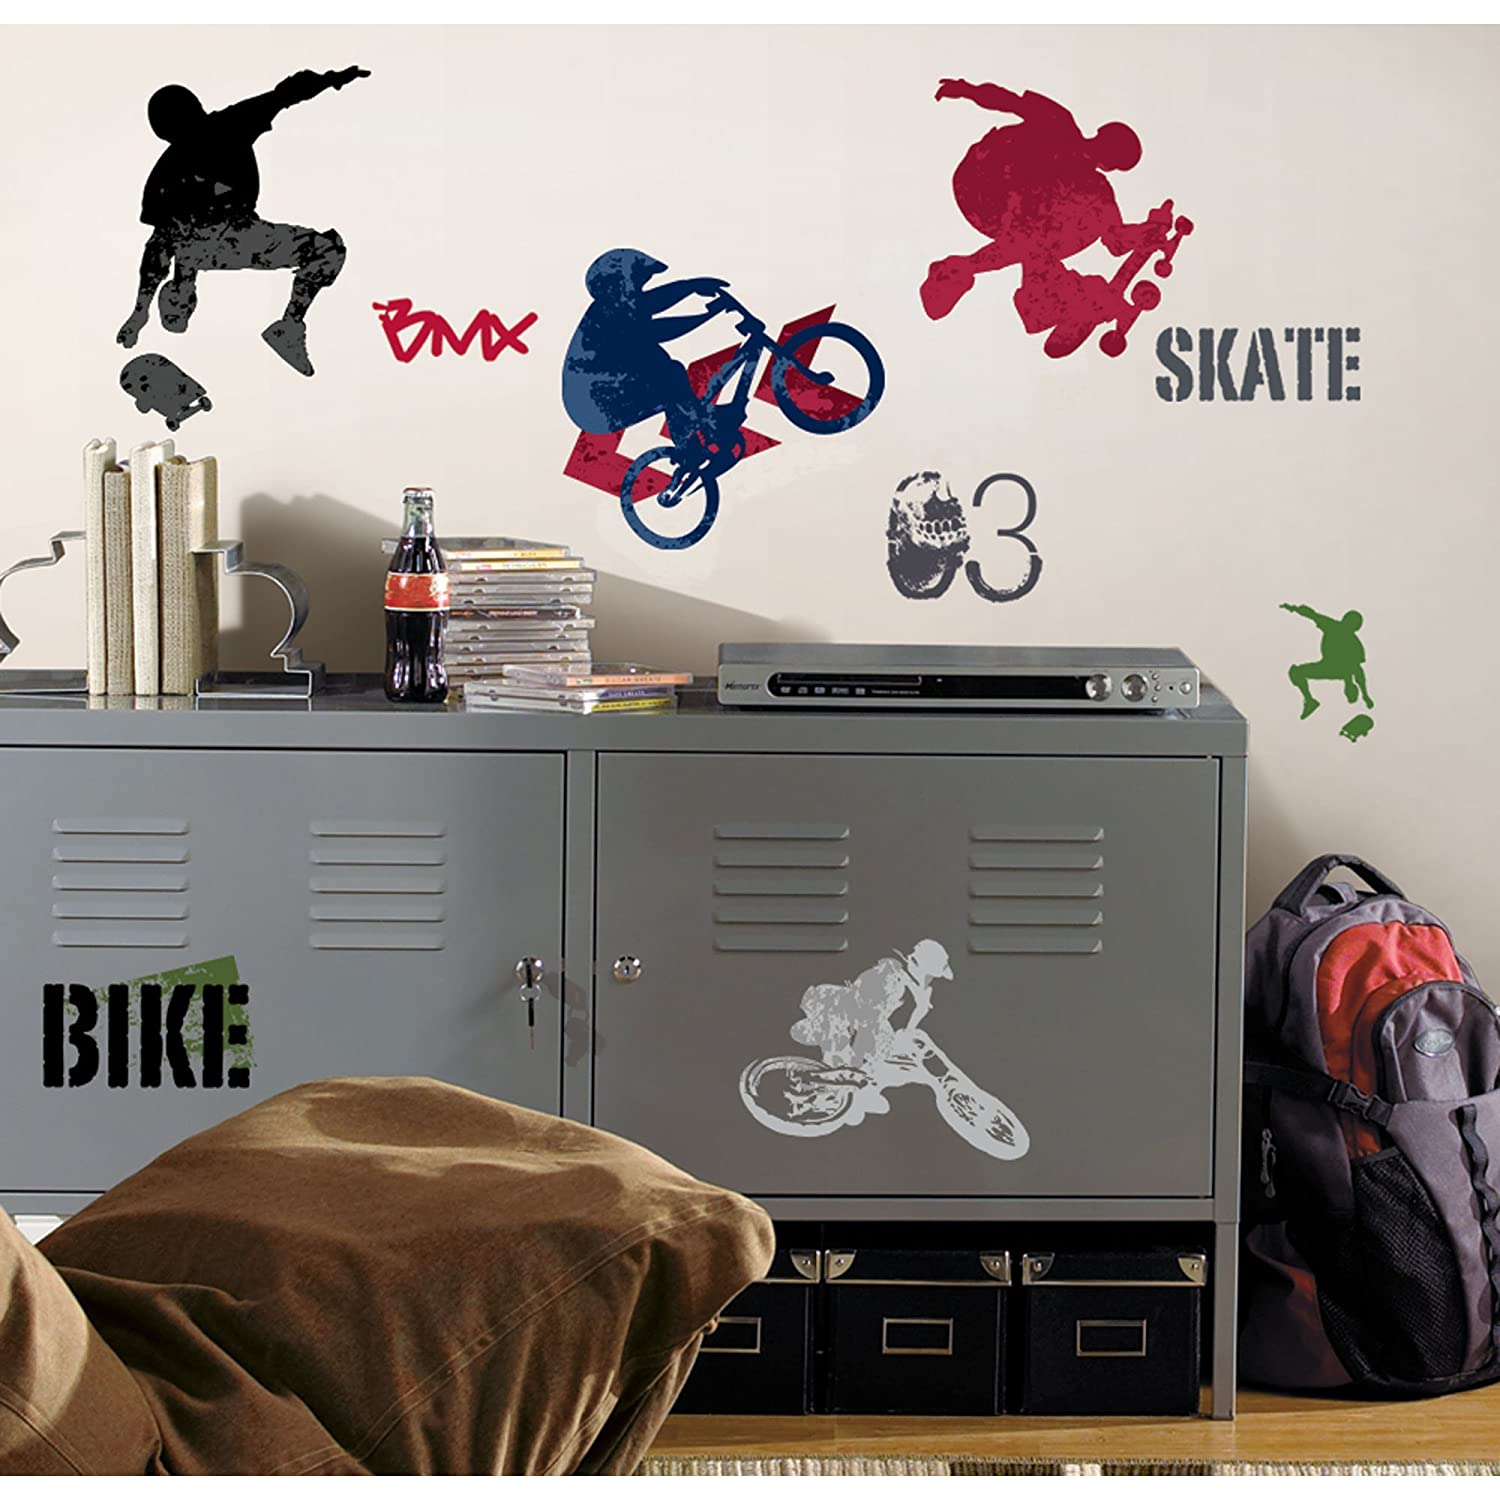 Roommates rmk1690scs extreme sports peel and stick wall decals roommates rmk1690scs extreme sports peel and stick wall decals wall decor stickers amazon amipublicfo Images